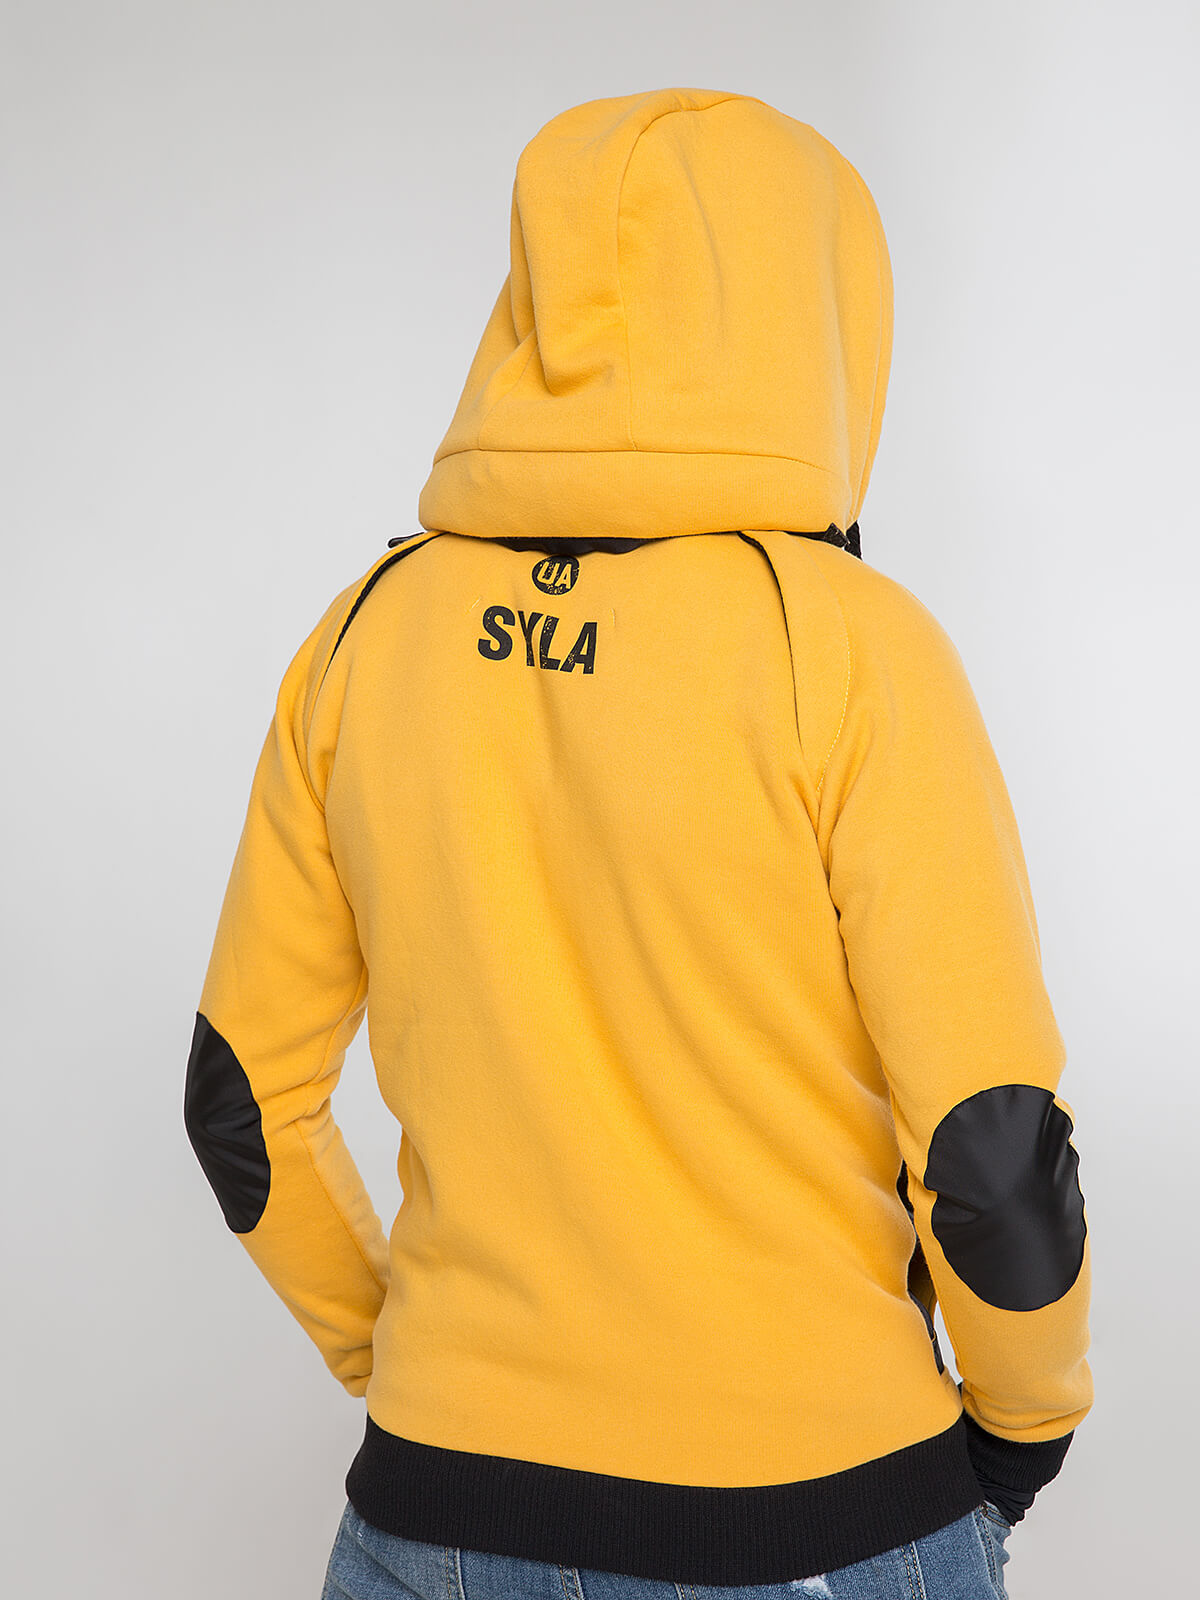 Men's Hoodie Syla. Color yellow.  Material of the inserts – oxford cloth: 100% polyester.